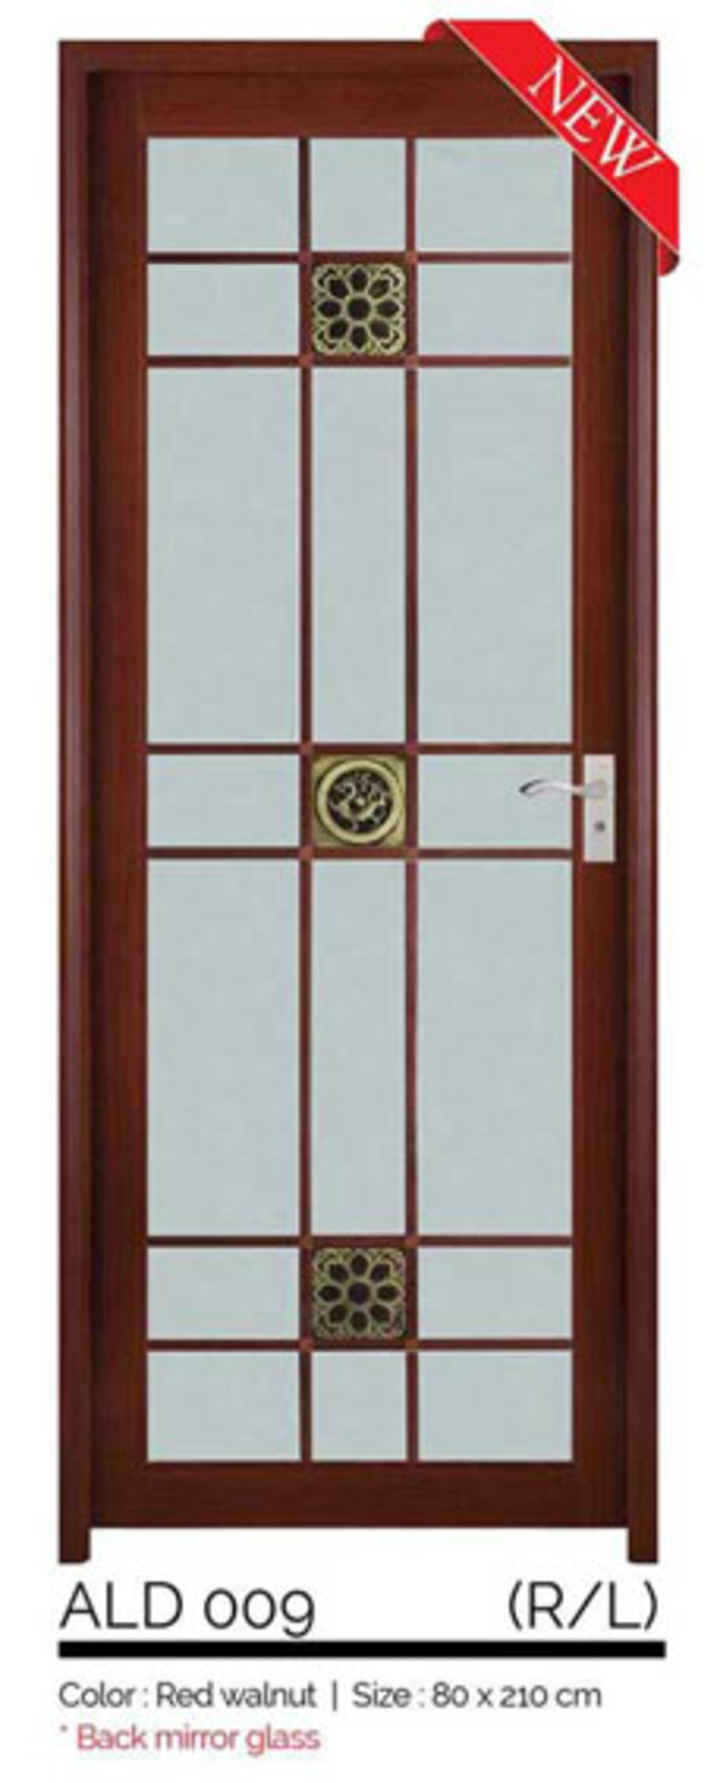 MERIDIAN PINTU ALM ALD 009 RED WALNUT RIGHT 80X210CM PCS